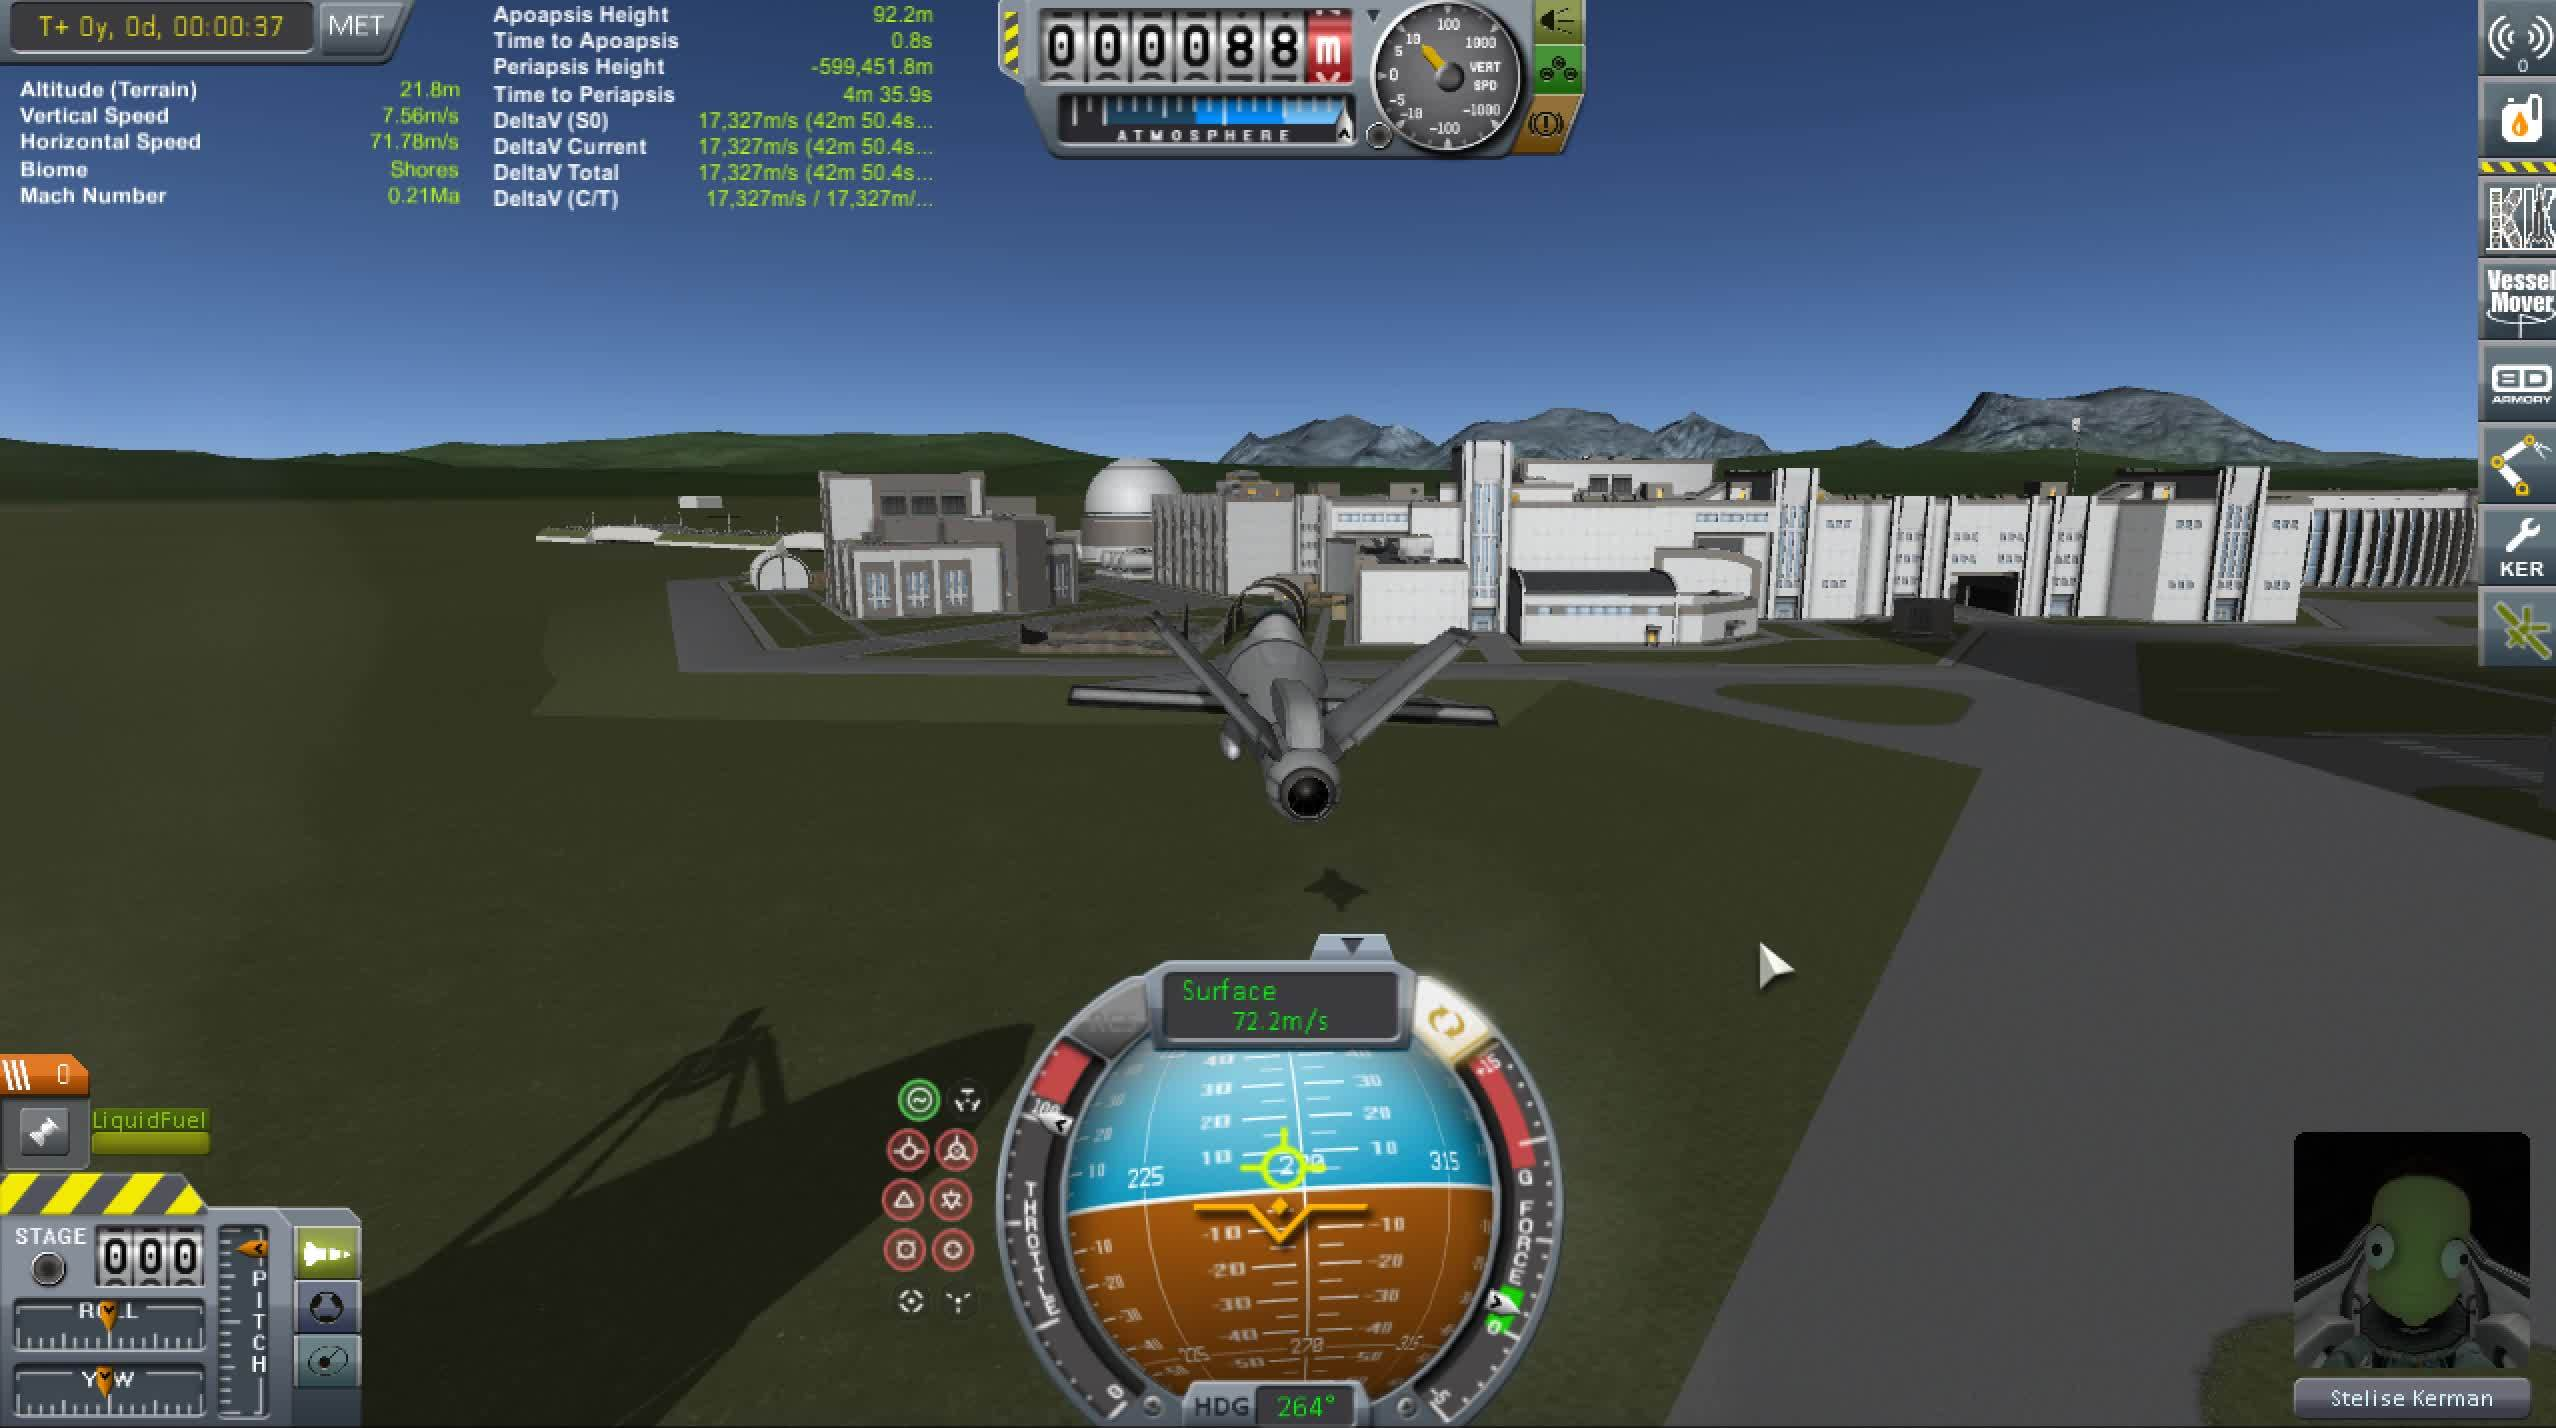 gifsthatendtoosoon, kerbalspaceprogram, Flying through a tiny hangar in KSP GIFs